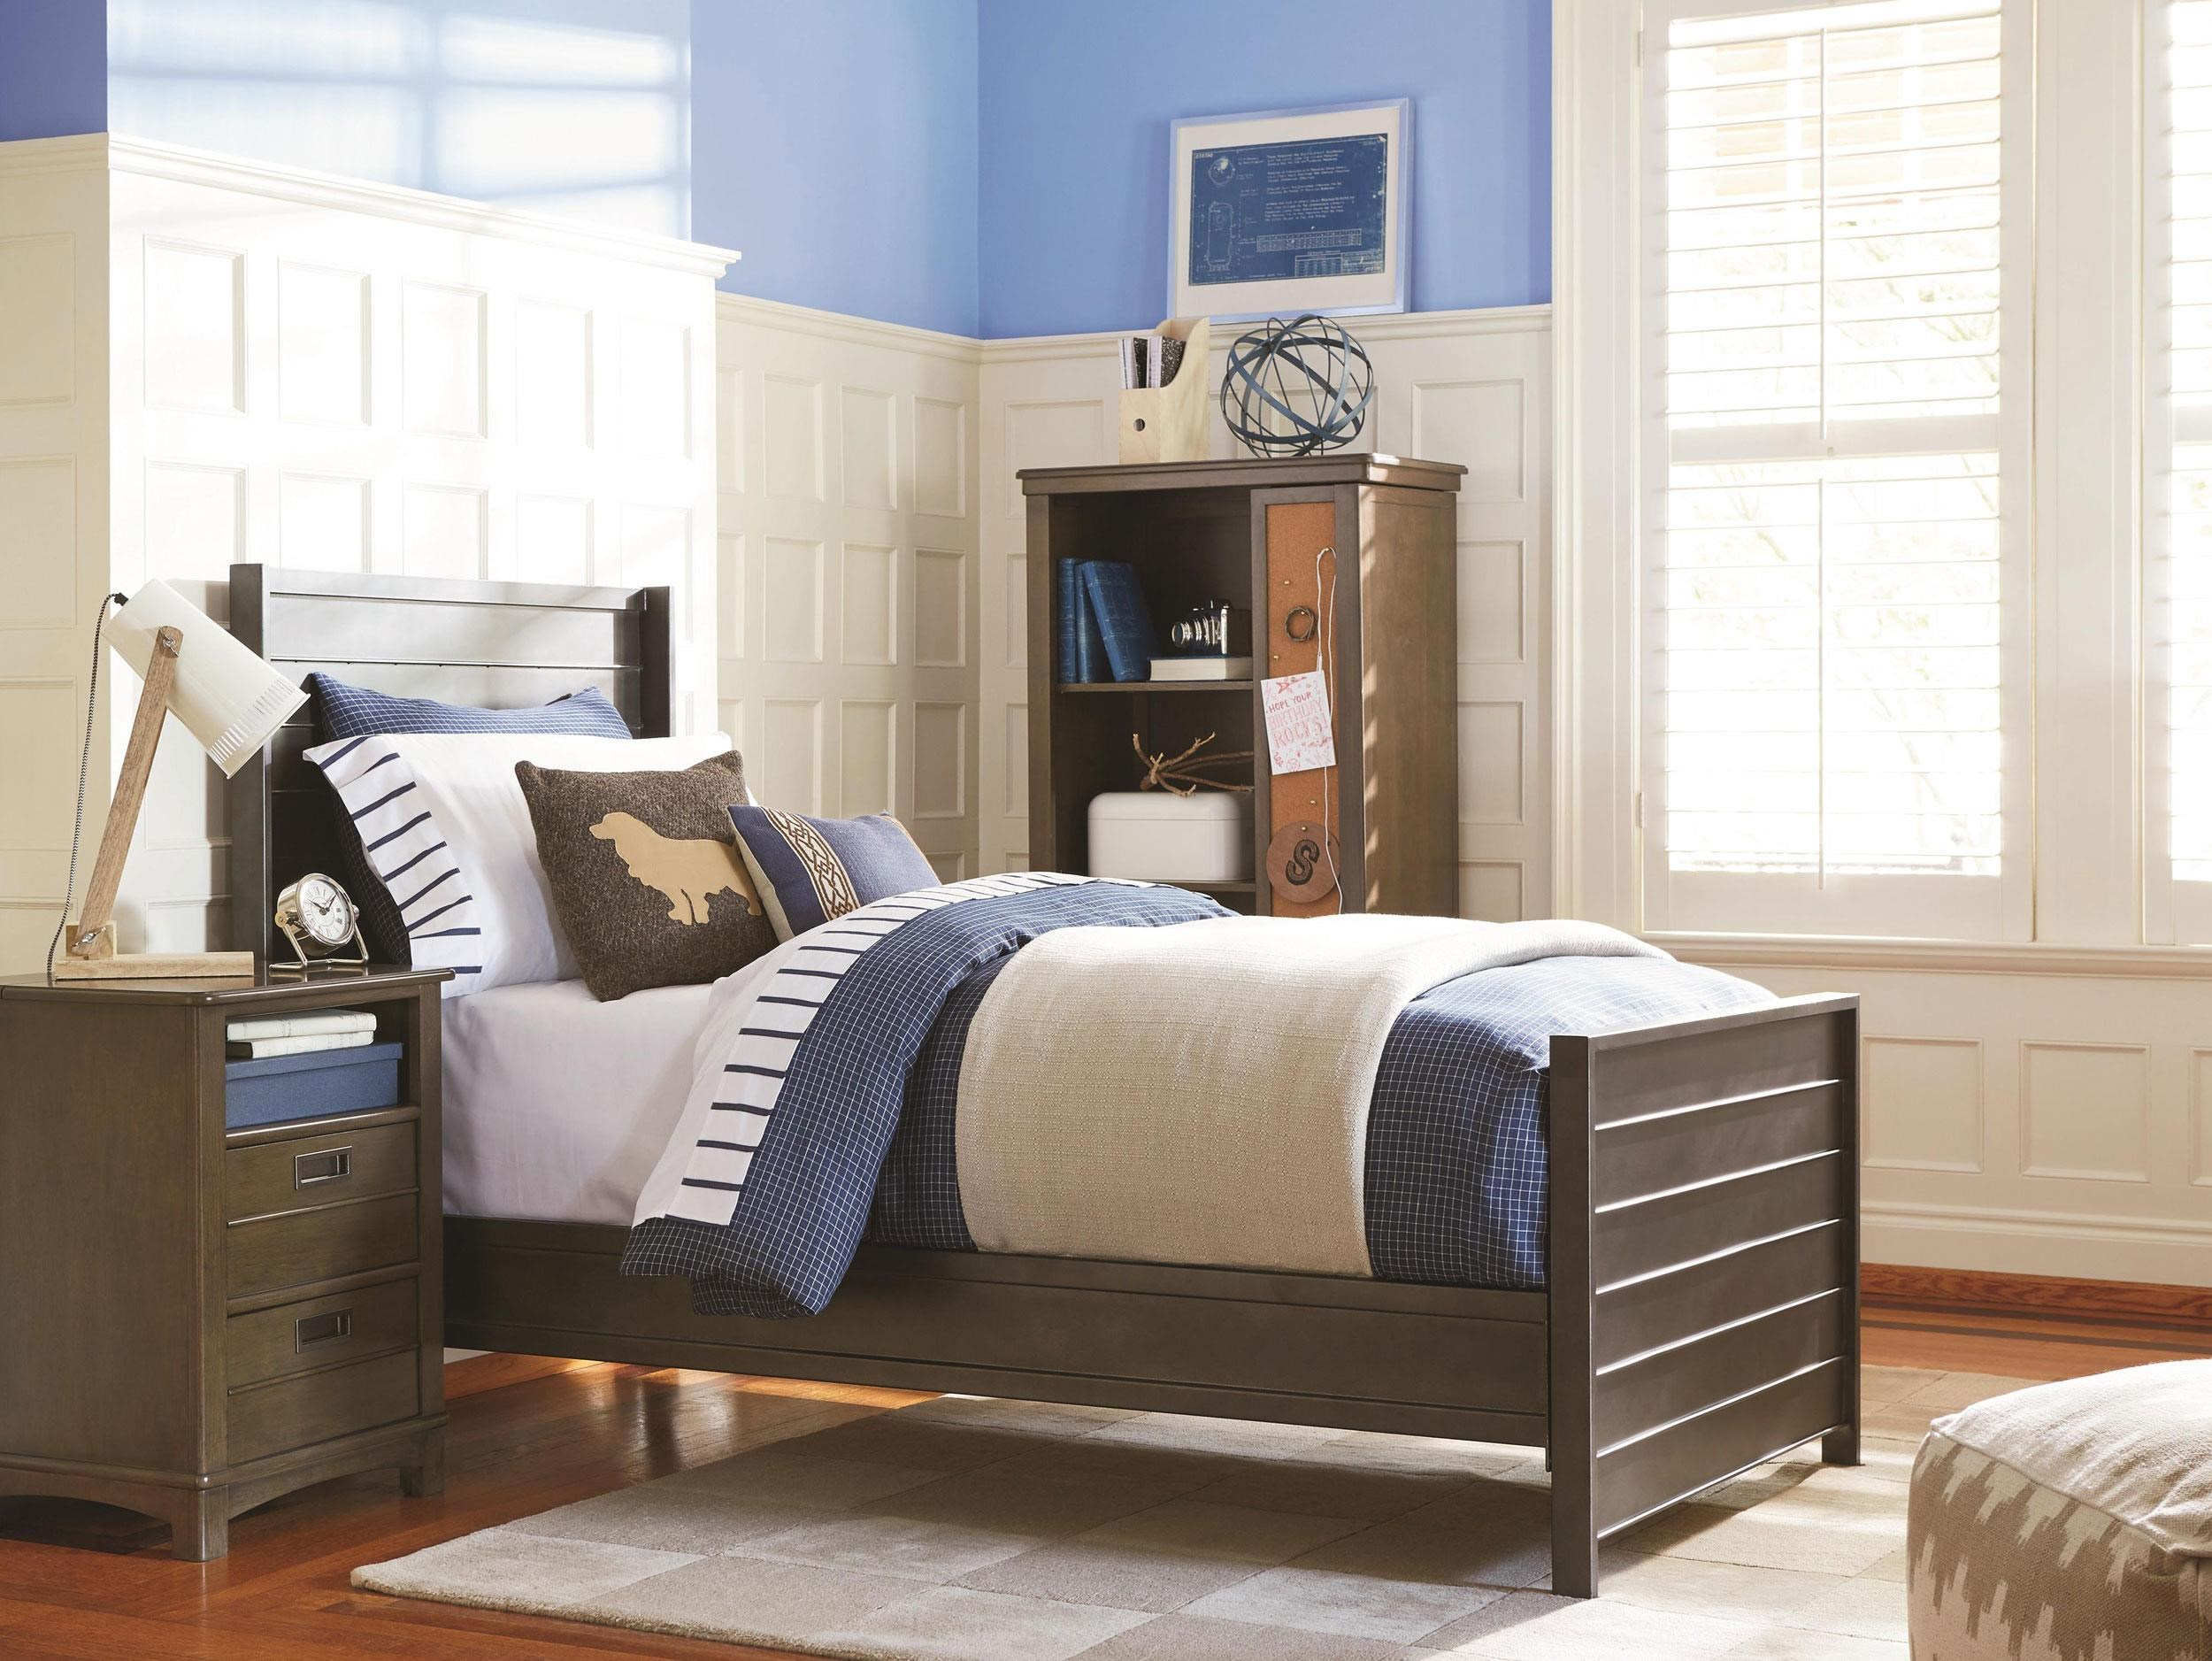 Bedroom Furniture Kitchener Smartstuff By Universal At Stoney Creek Furniture Toronto